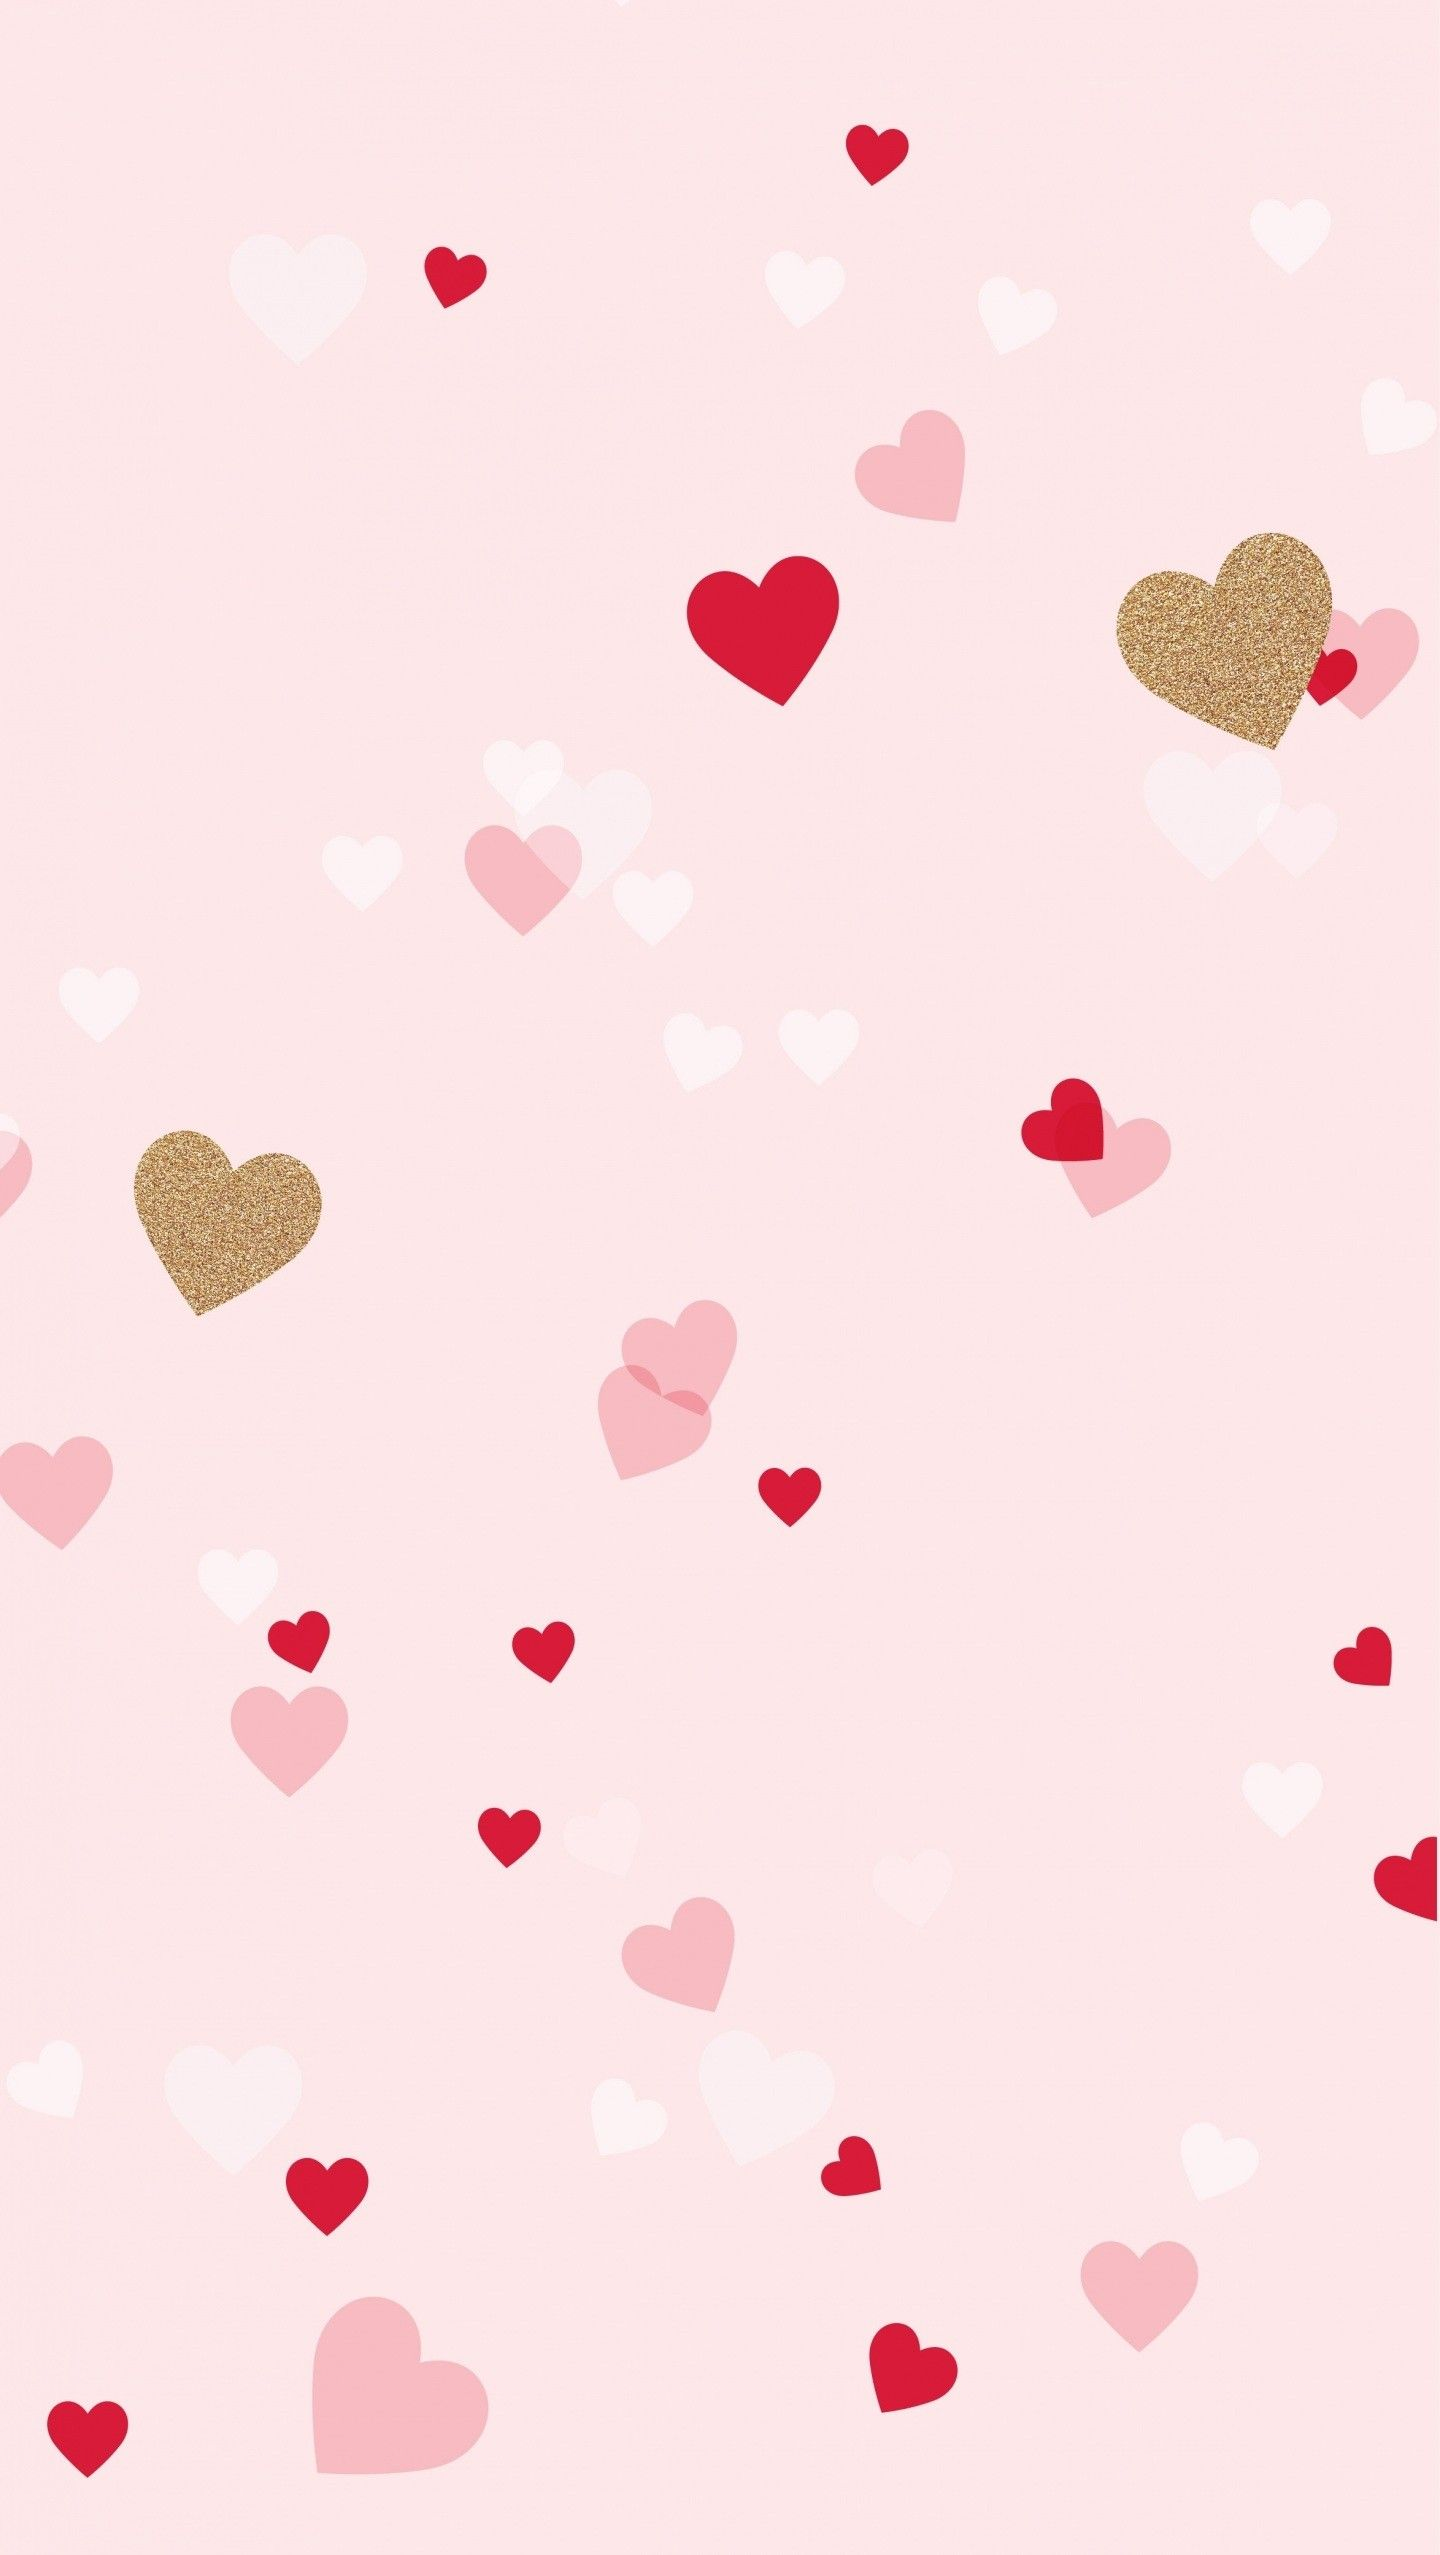 Background Cute Hd : background, Wallpaper, Iphone, Hearts, Background, Image, Girly,, Valentines, Wallpaper,, Tumblr